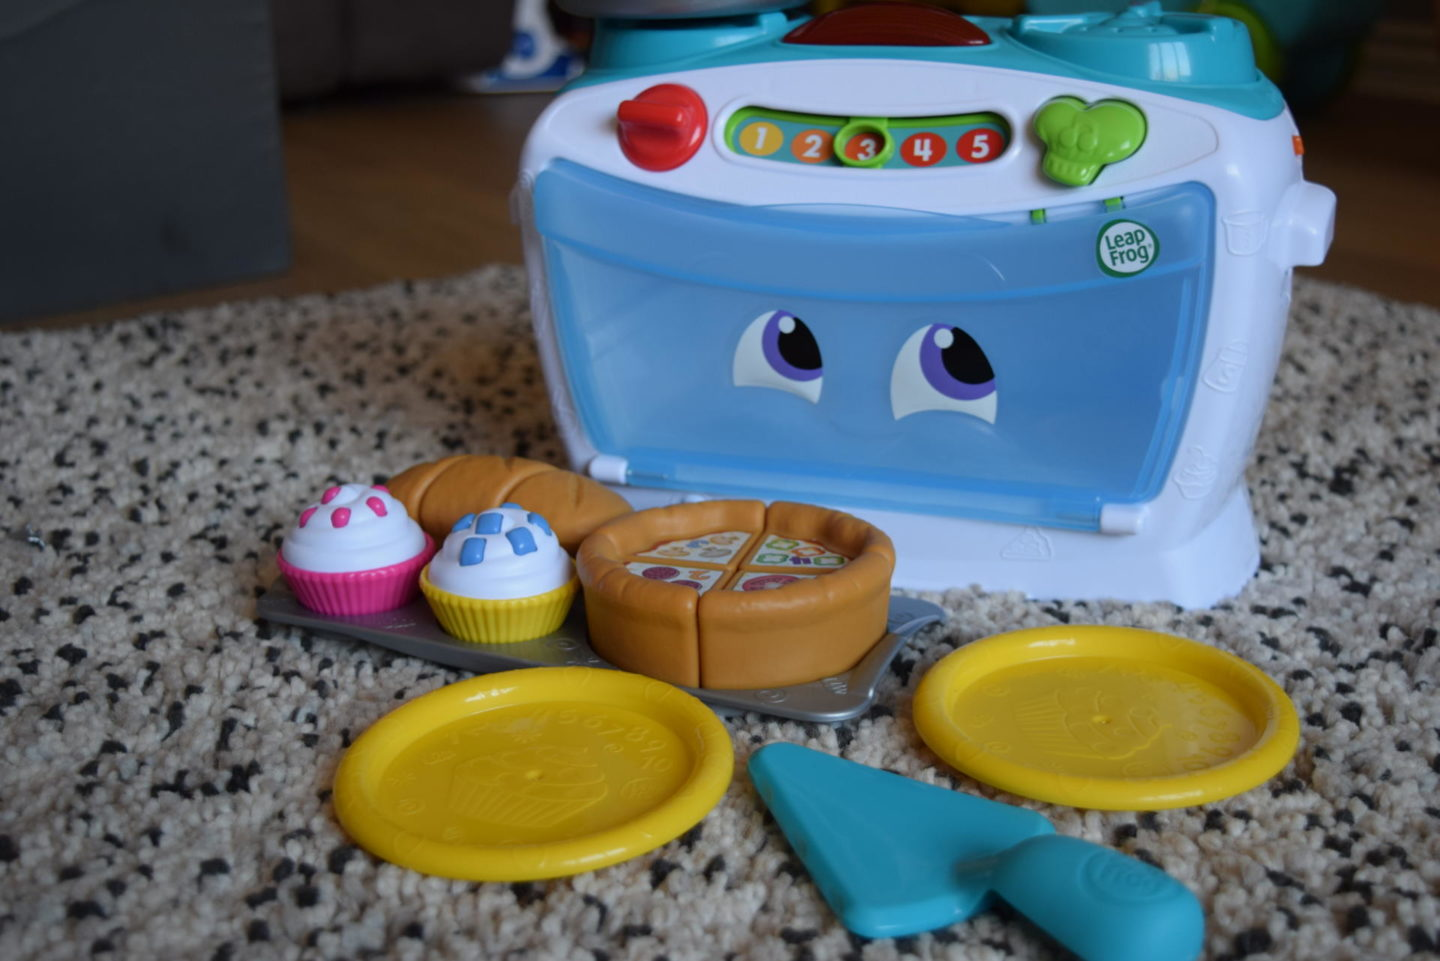 Review | LeapFrog Number Loving Oven